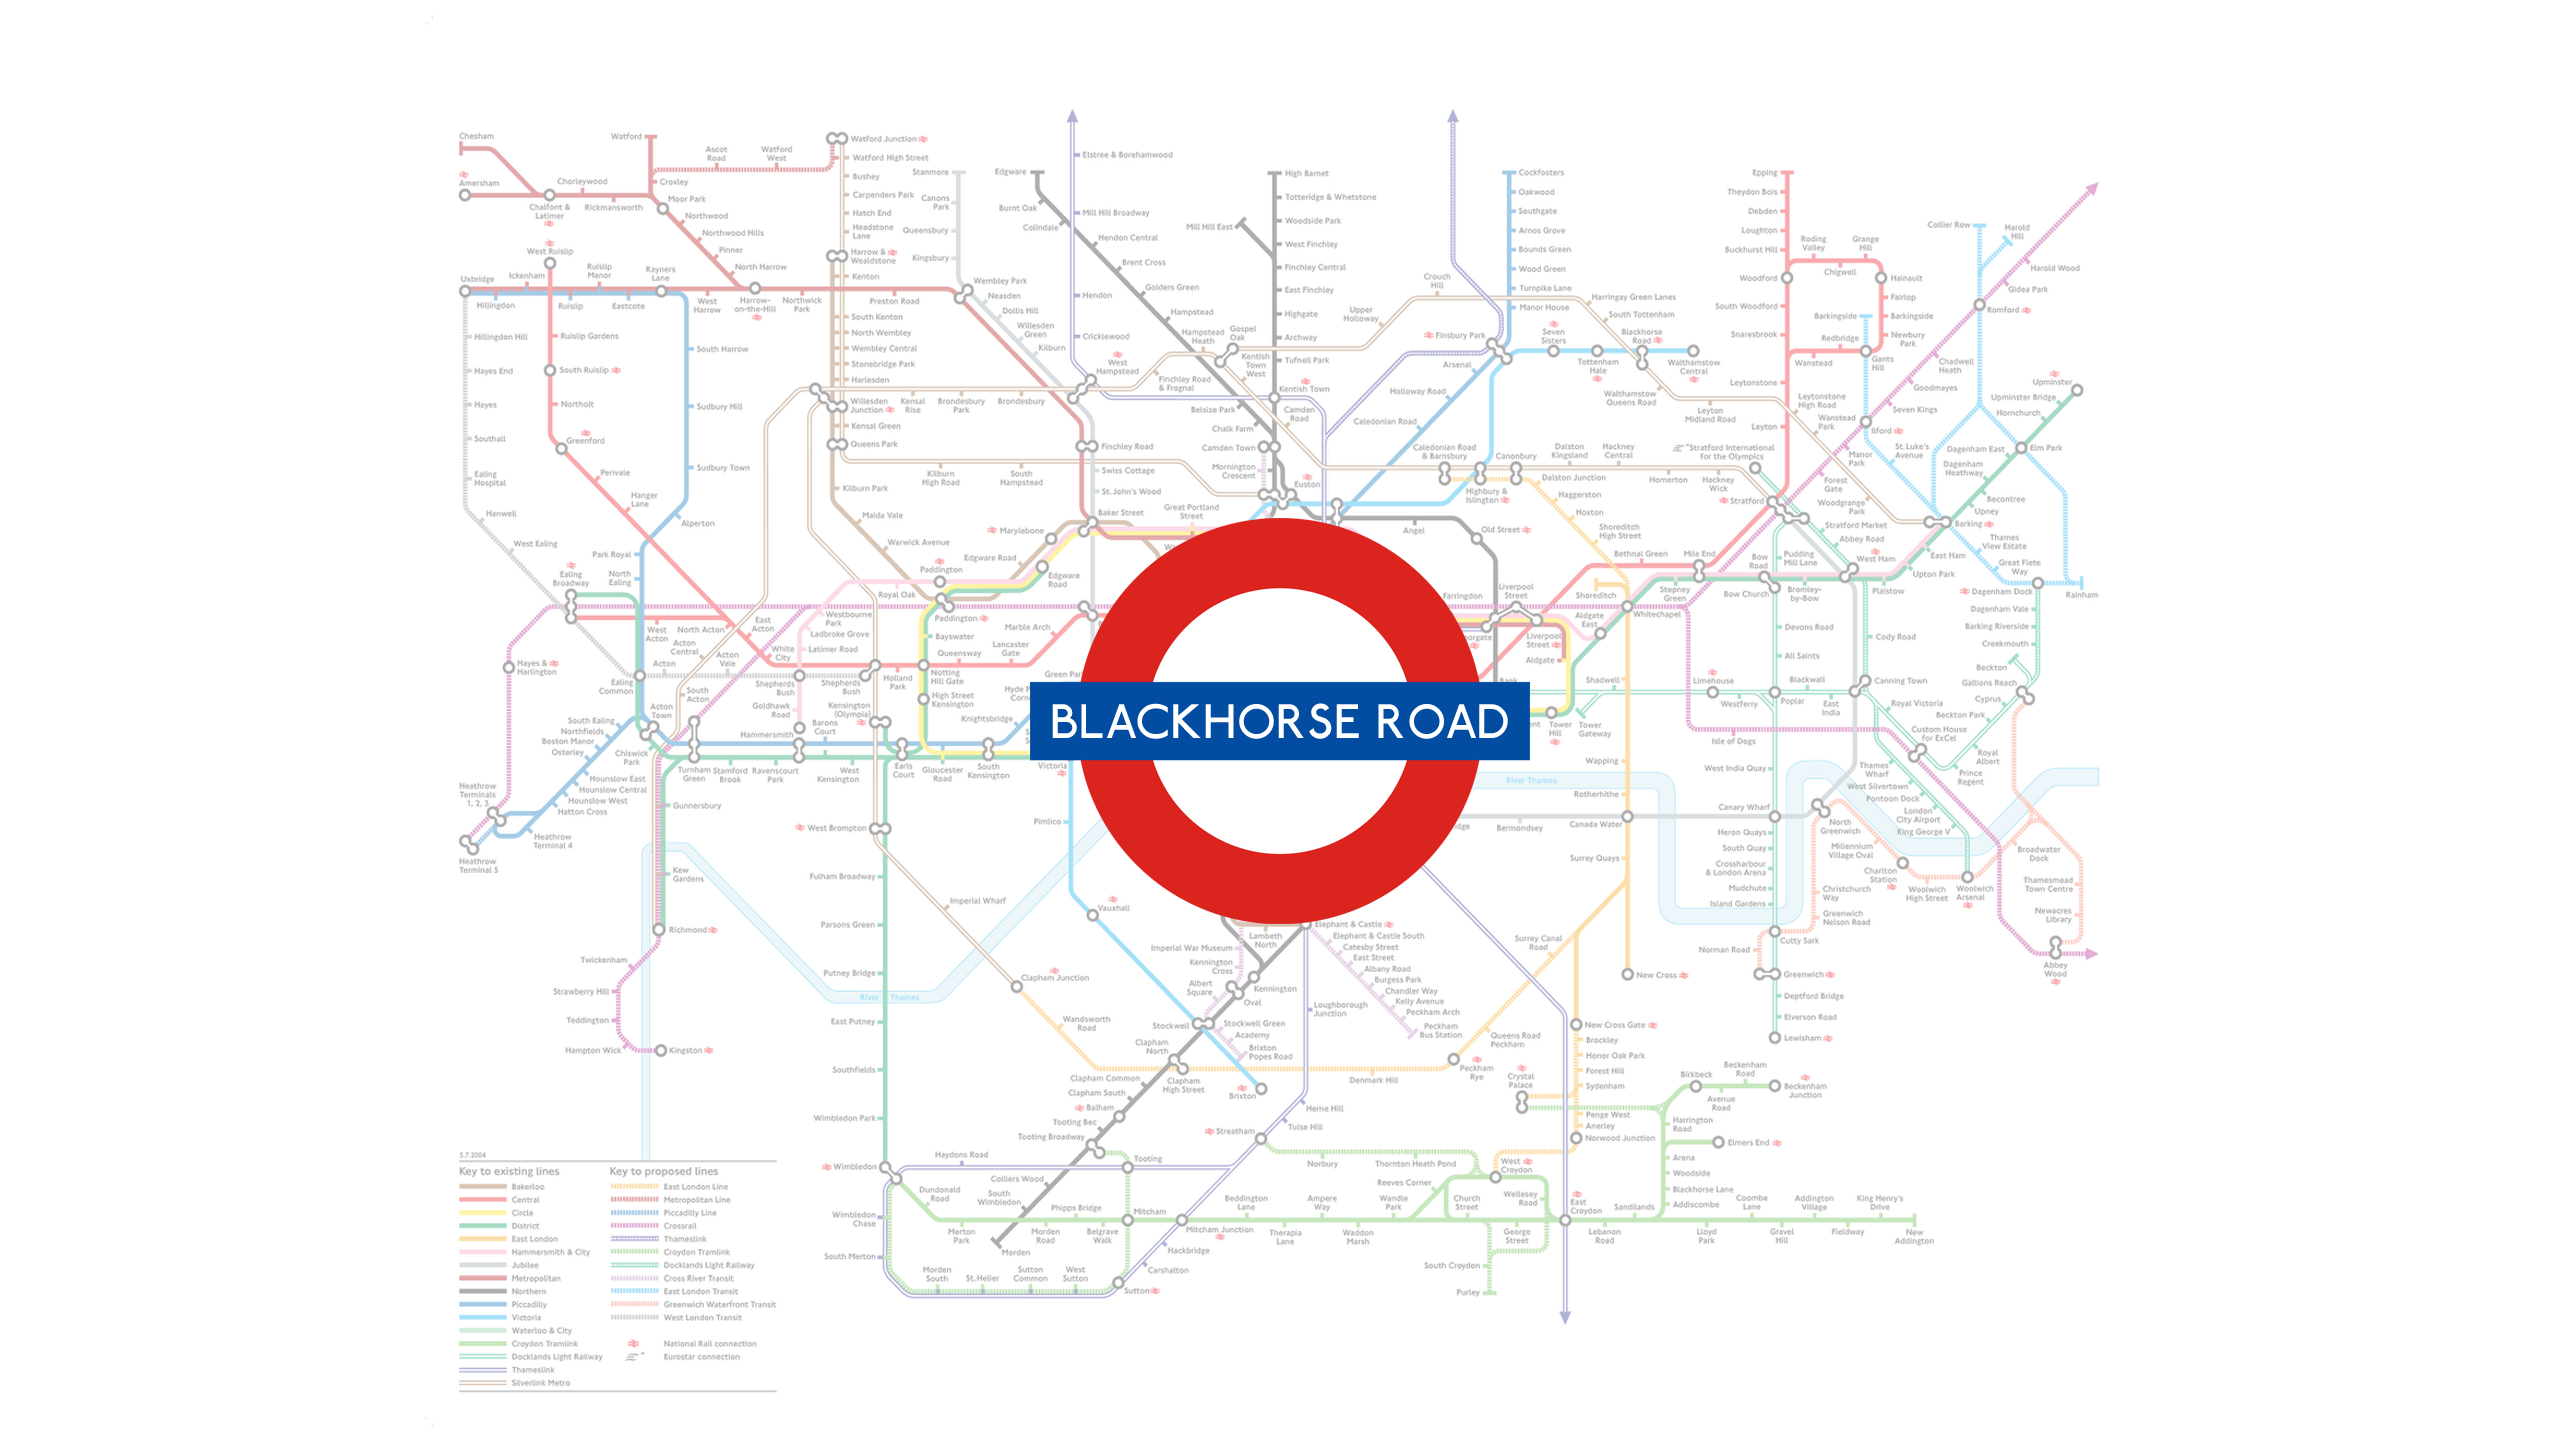 Blackhorse Road (Map)